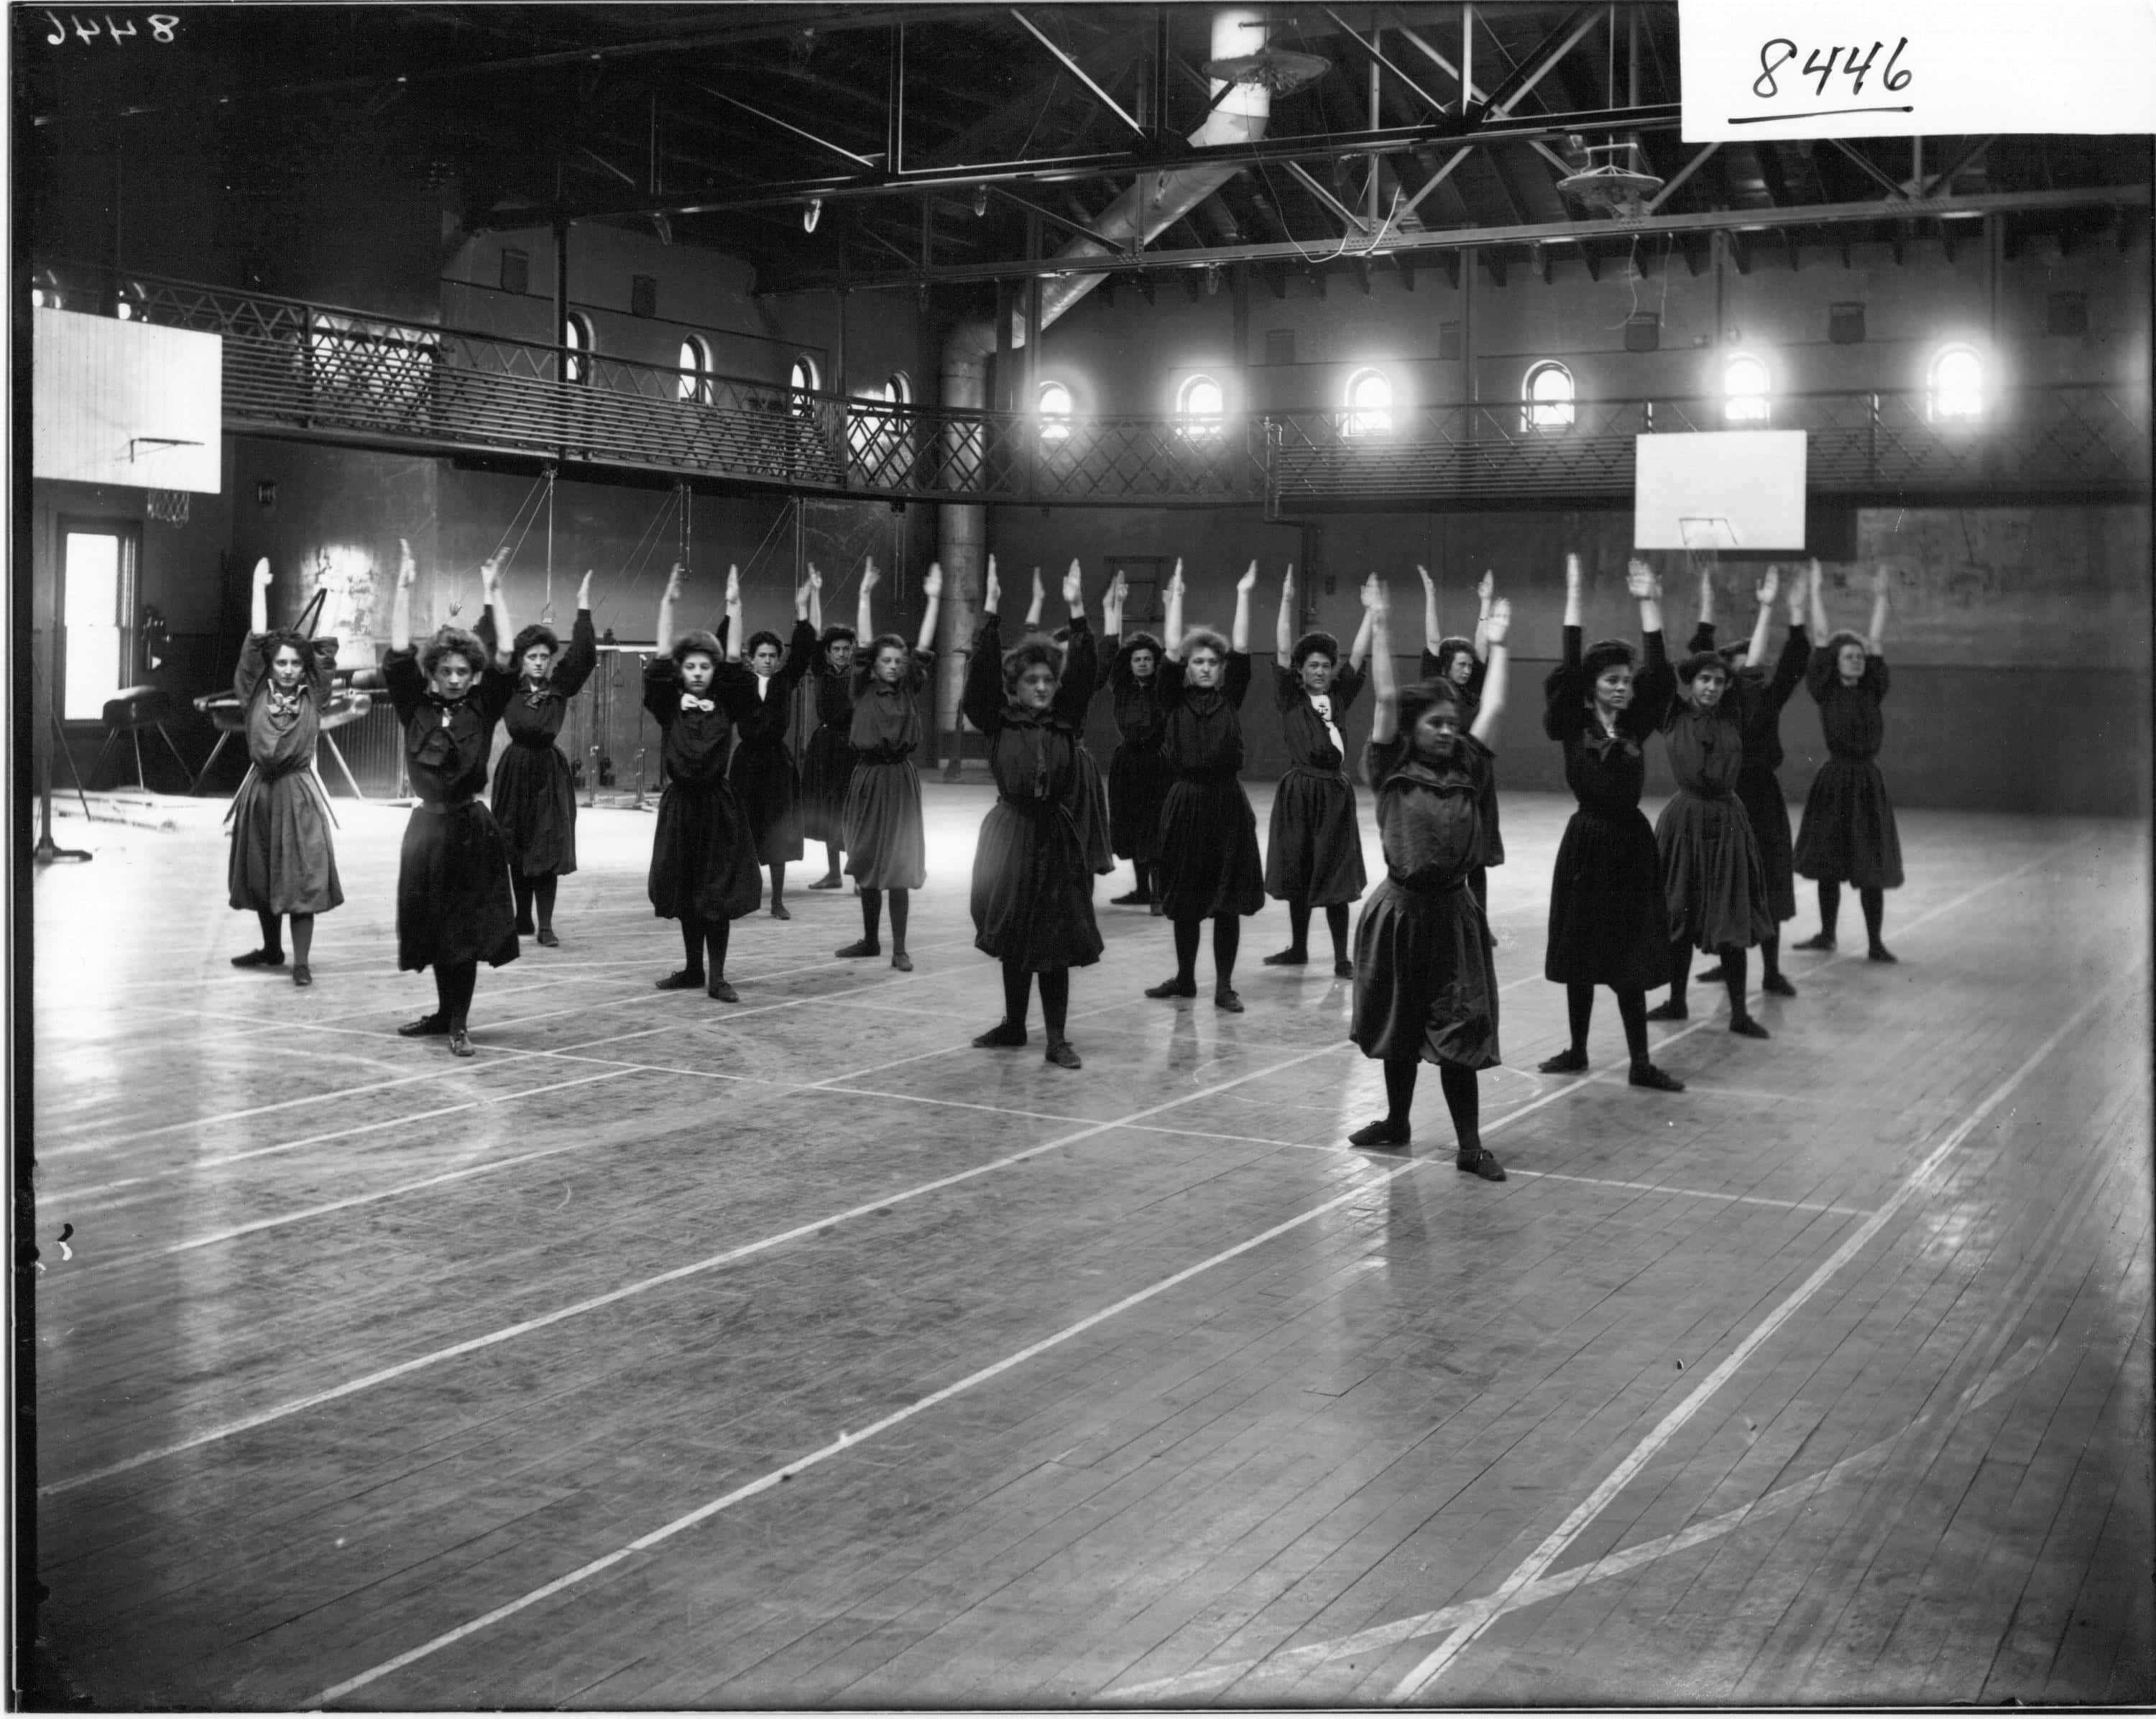 Women-performing-calisthenics-for-exhibition-in-Herron-Gymnasium-1908-Miami-University-by-Frank-R-Snyder